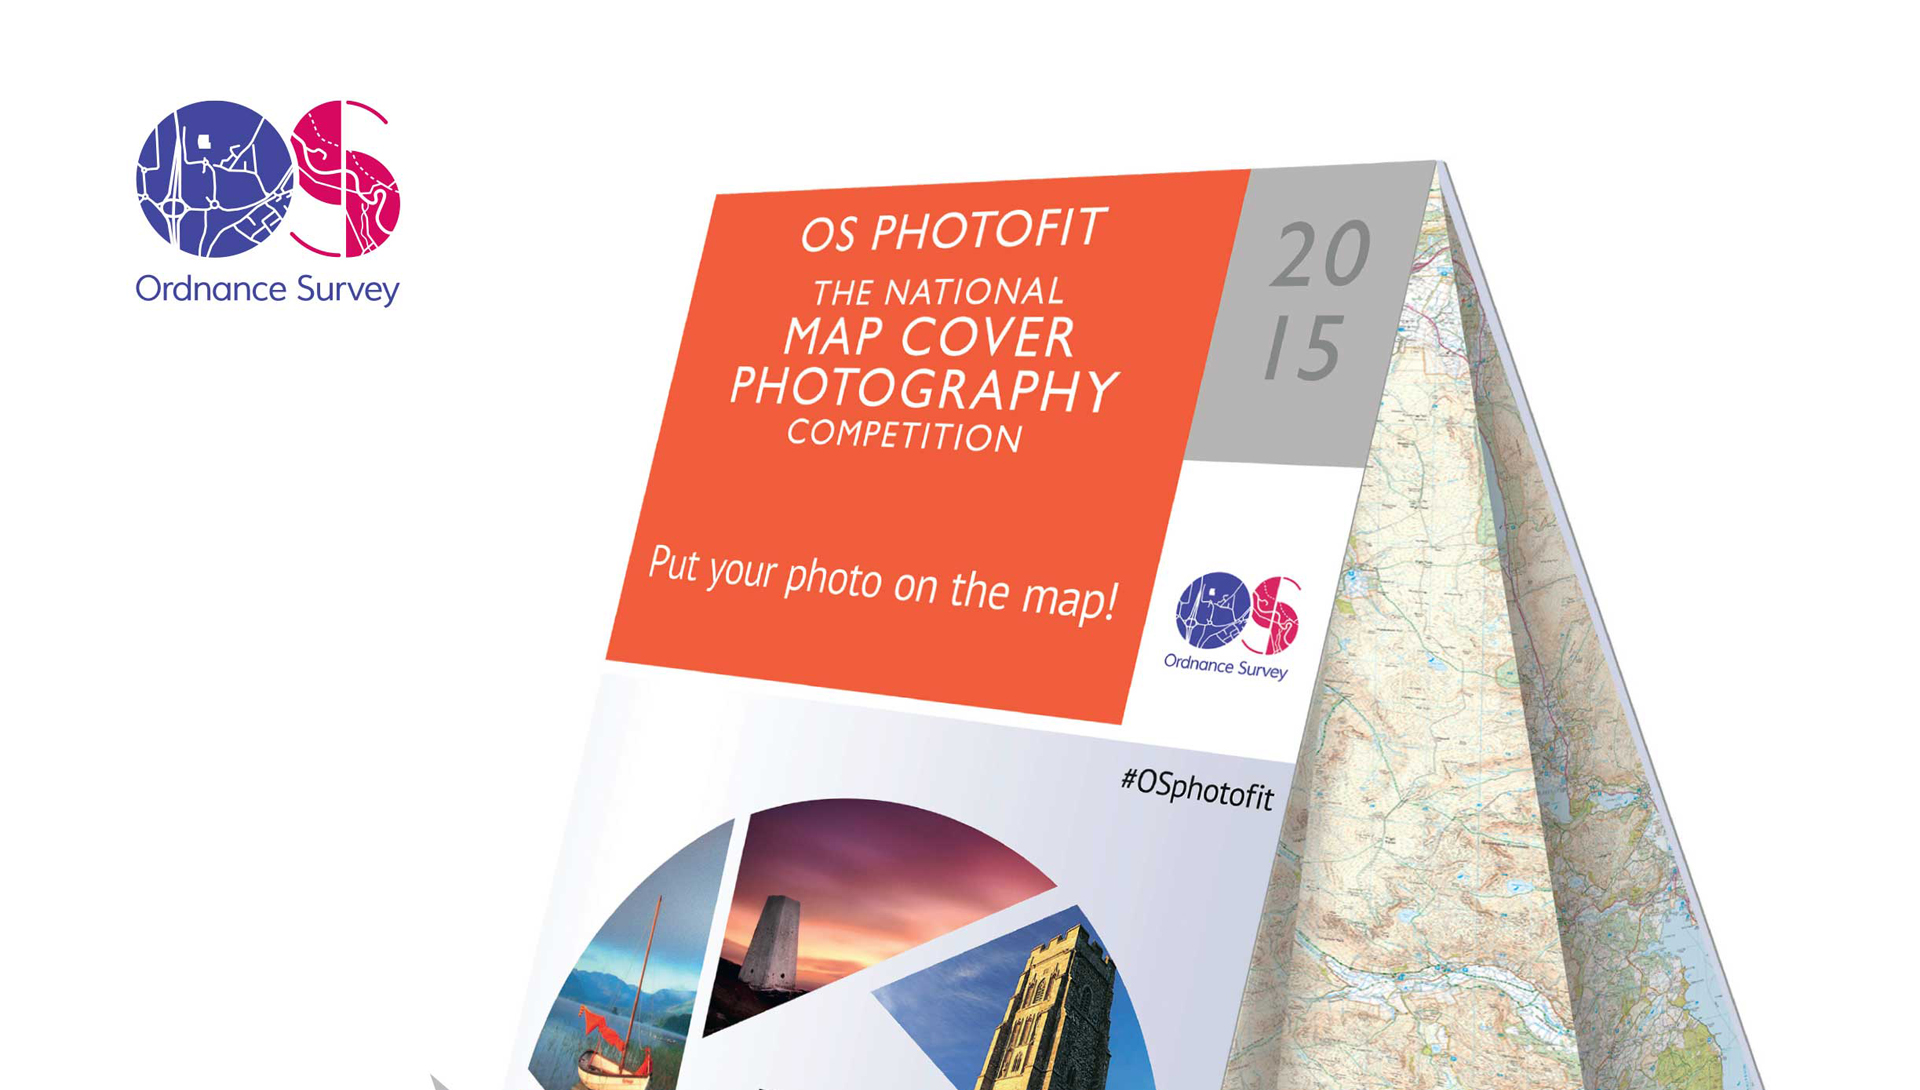 Put your photo on the map with Ordnance Survey